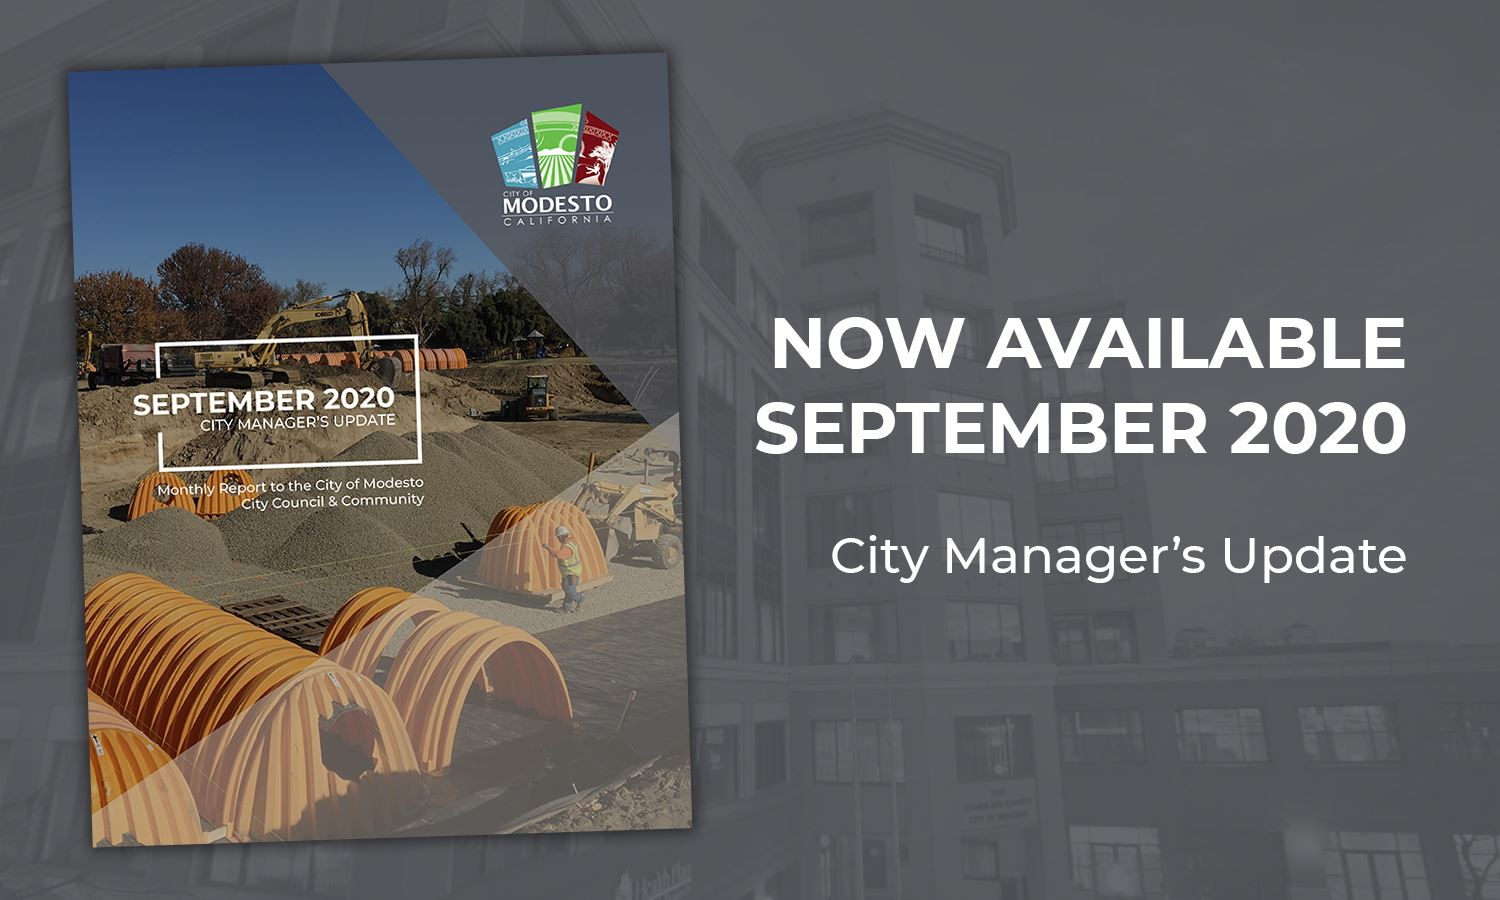 City Manager Monthly Report Now Available 2020 - SEPTEMBER